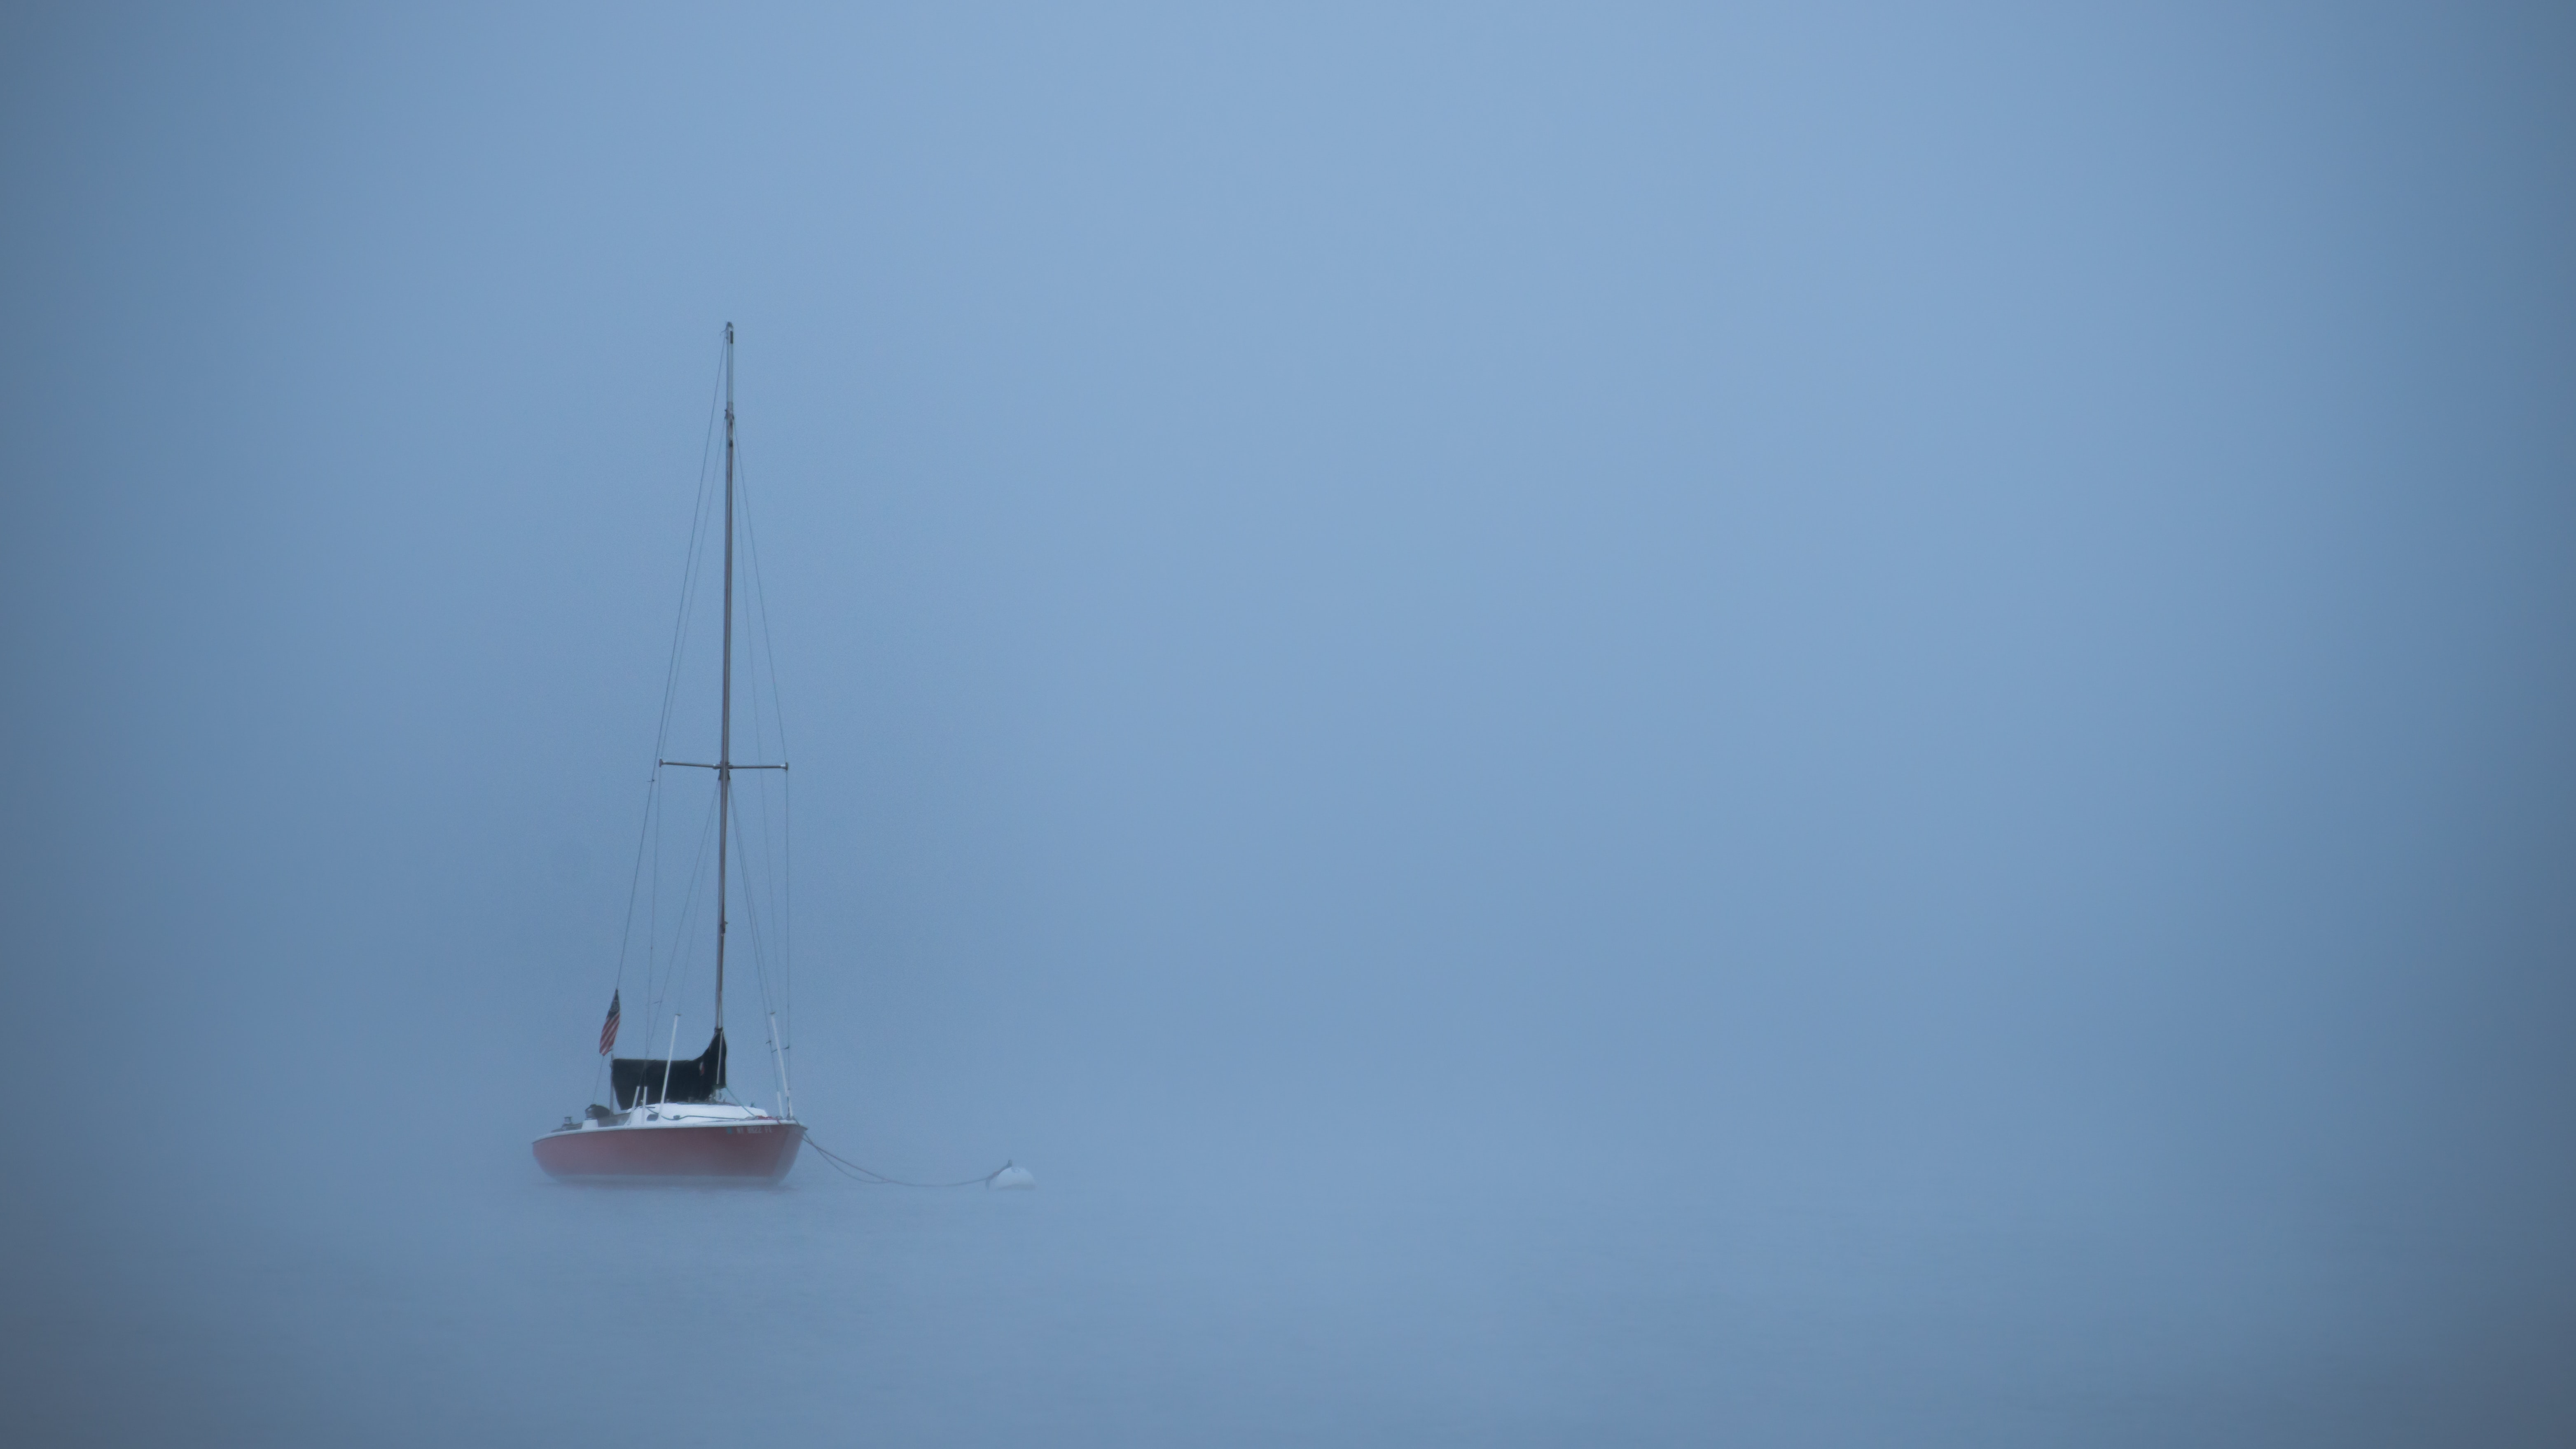 Isolated sailboat alone at sea in Chautauqua Institution